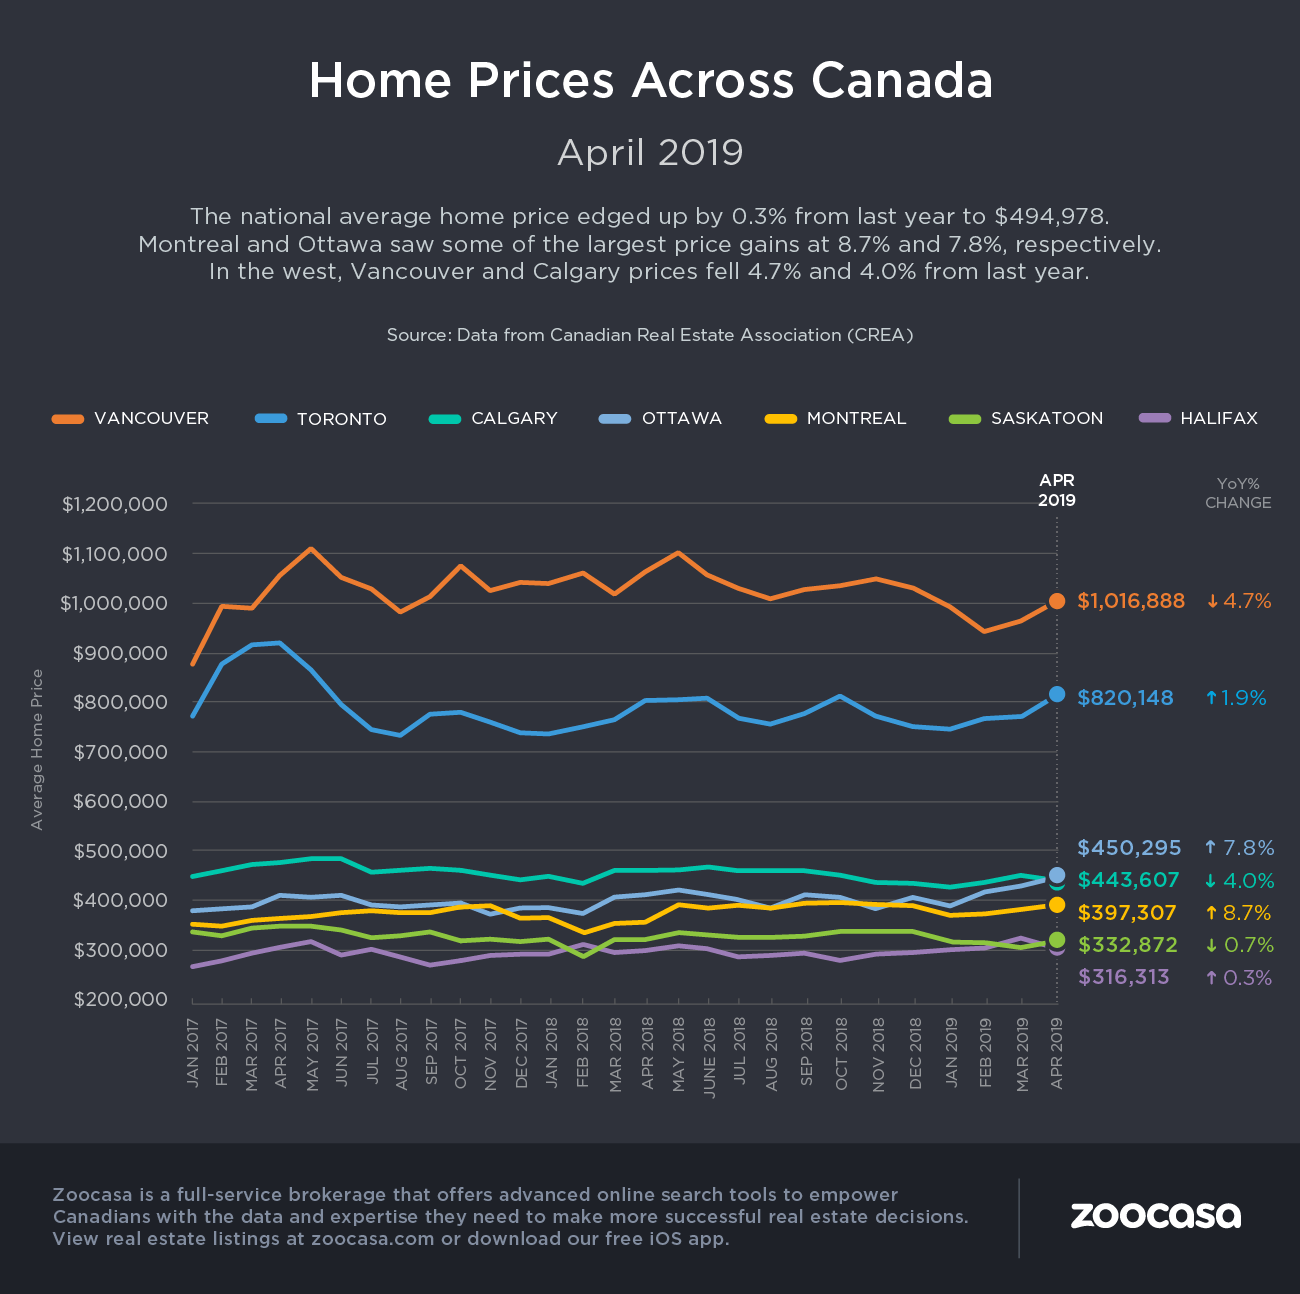 crea home prices april 2019